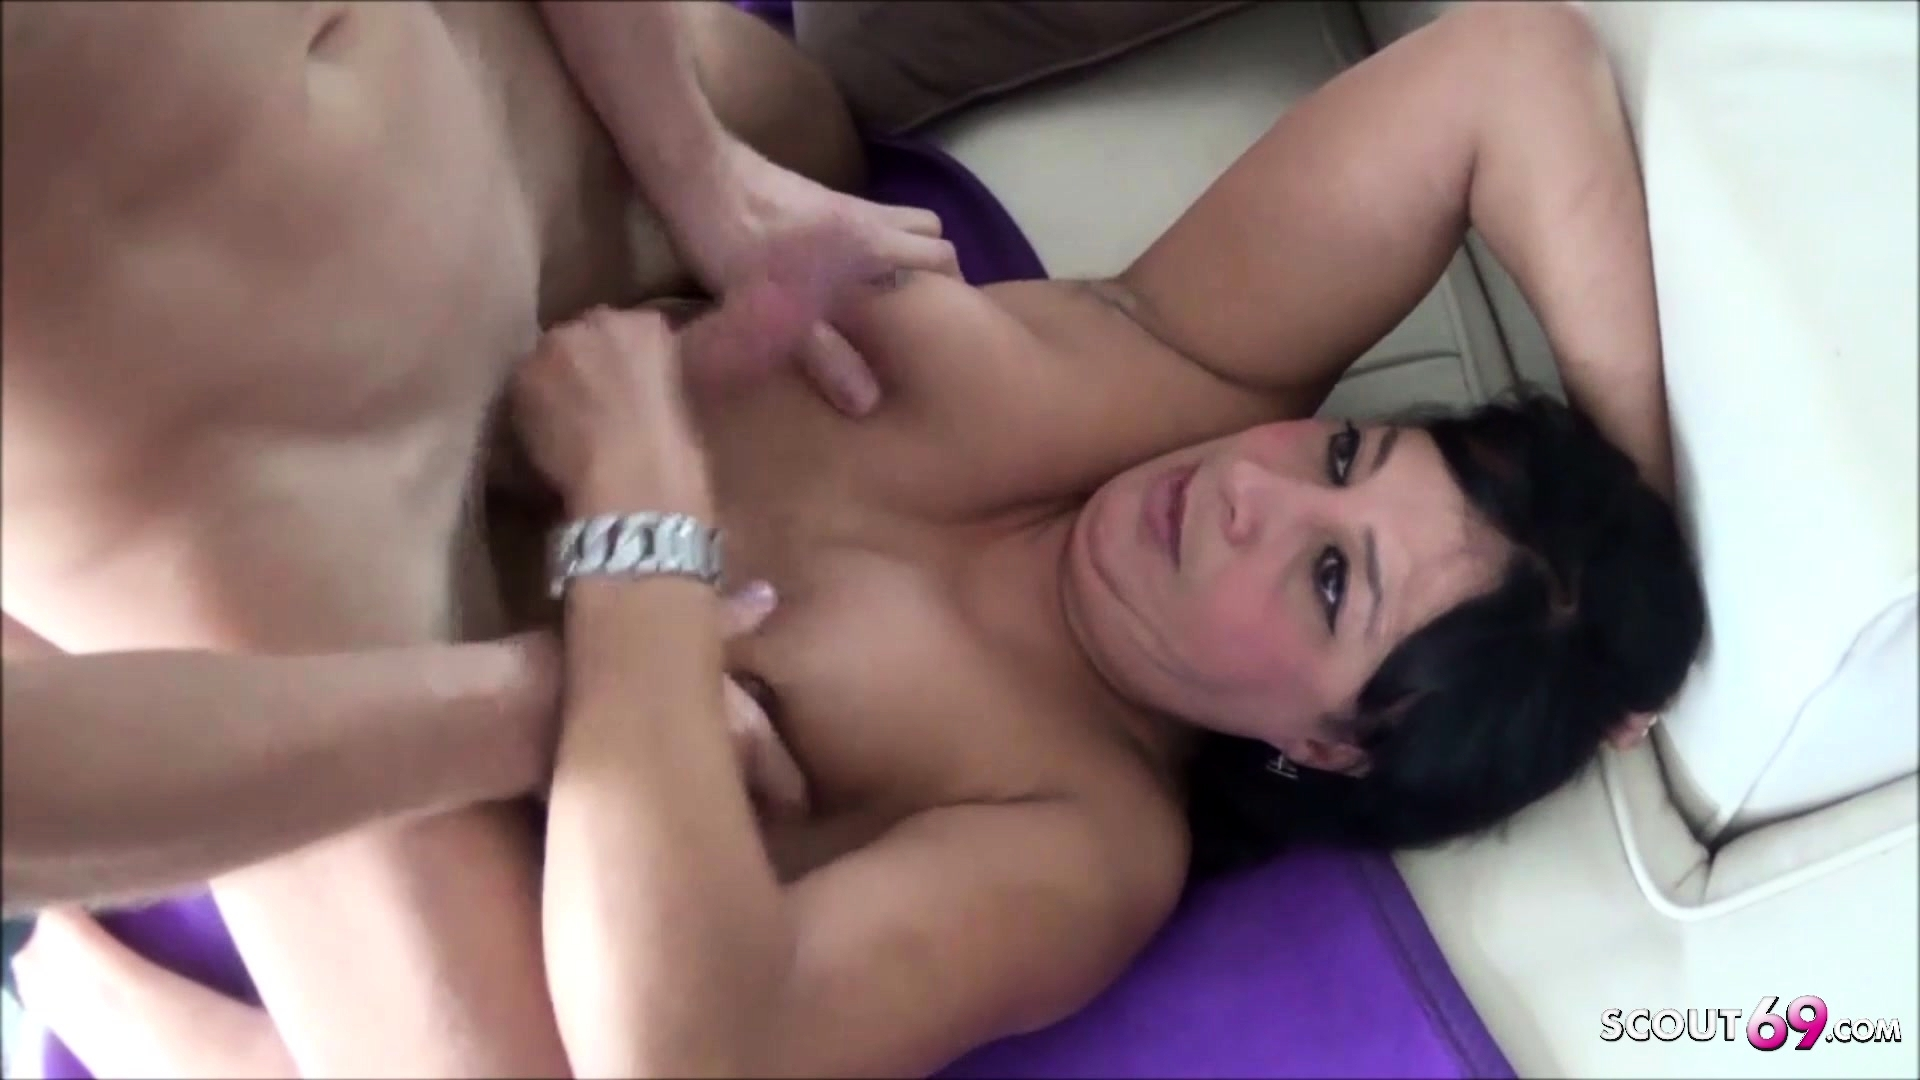 fingering while jerking off